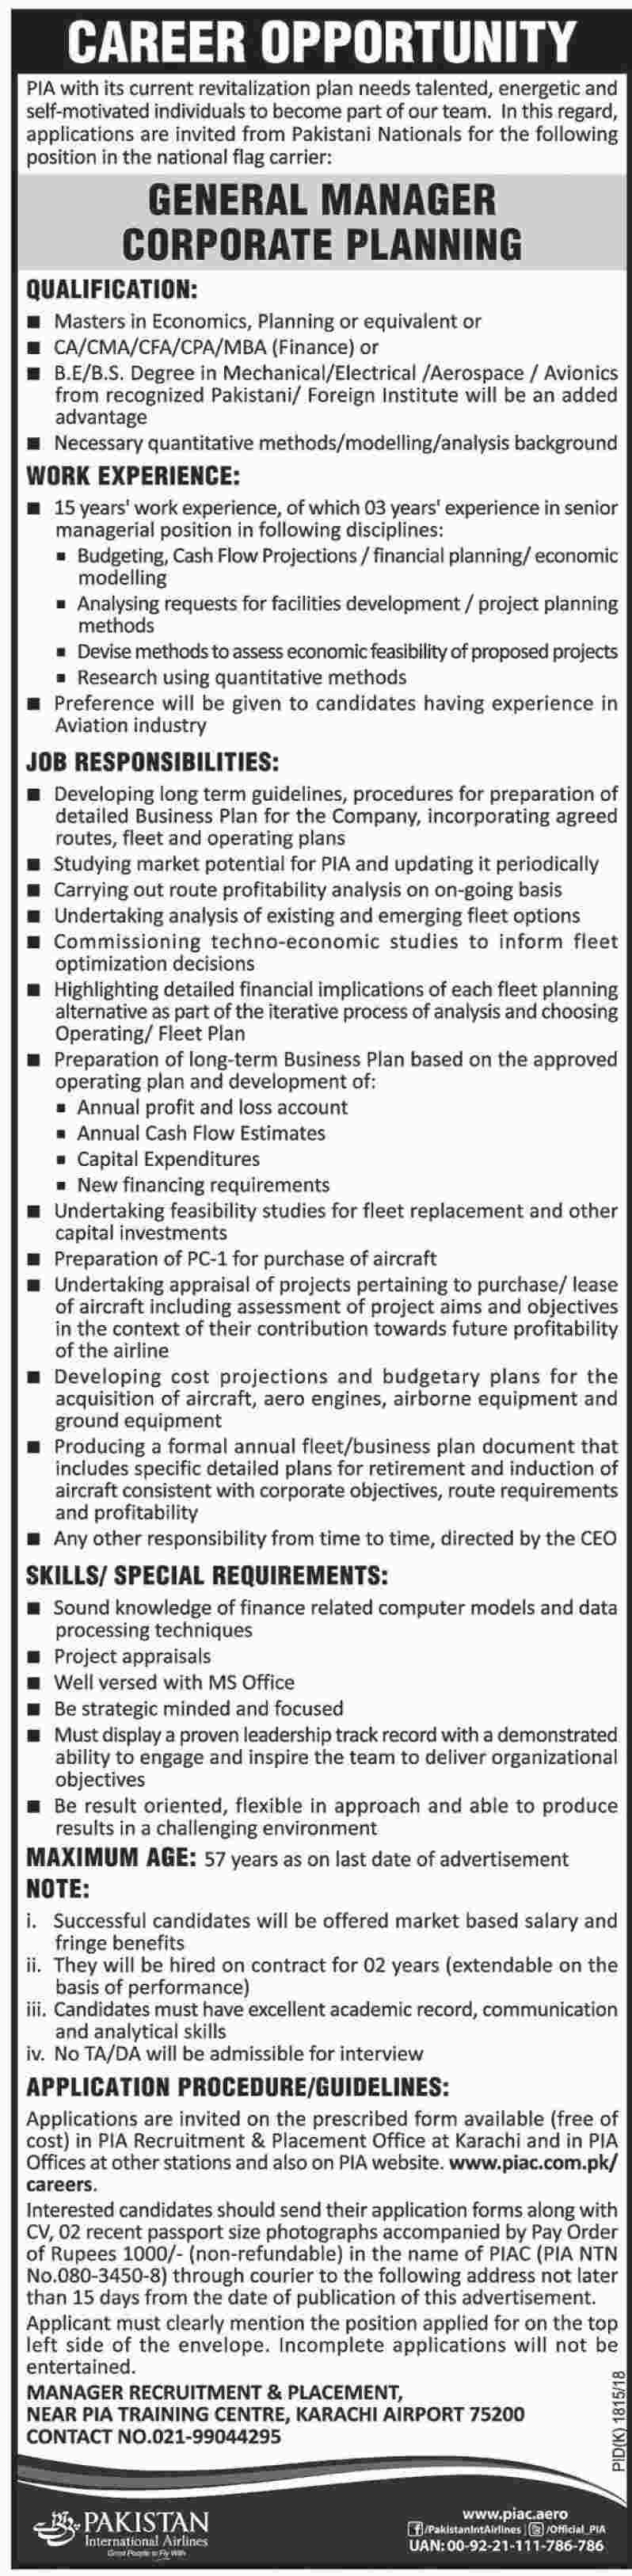 Pakistan Jobs PIA 2018 Jang Newspaper Pakistan International Airlines